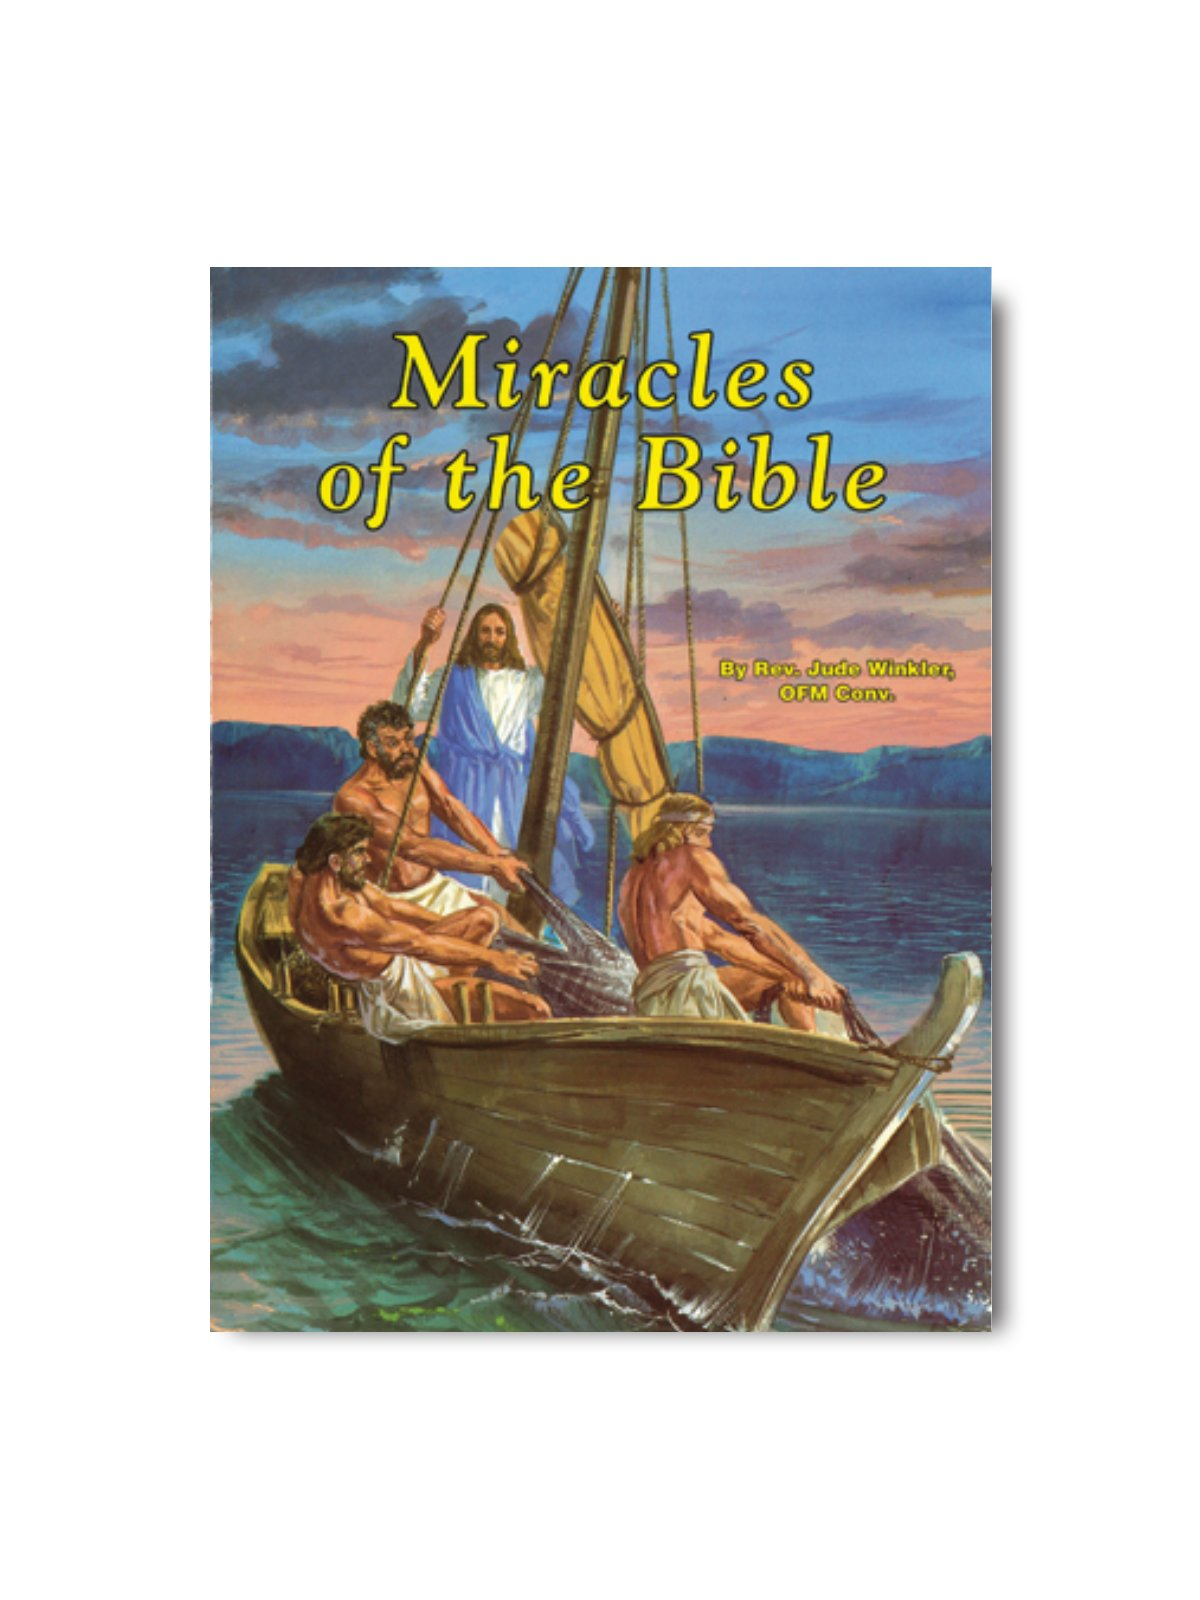 Miracles in the Bible